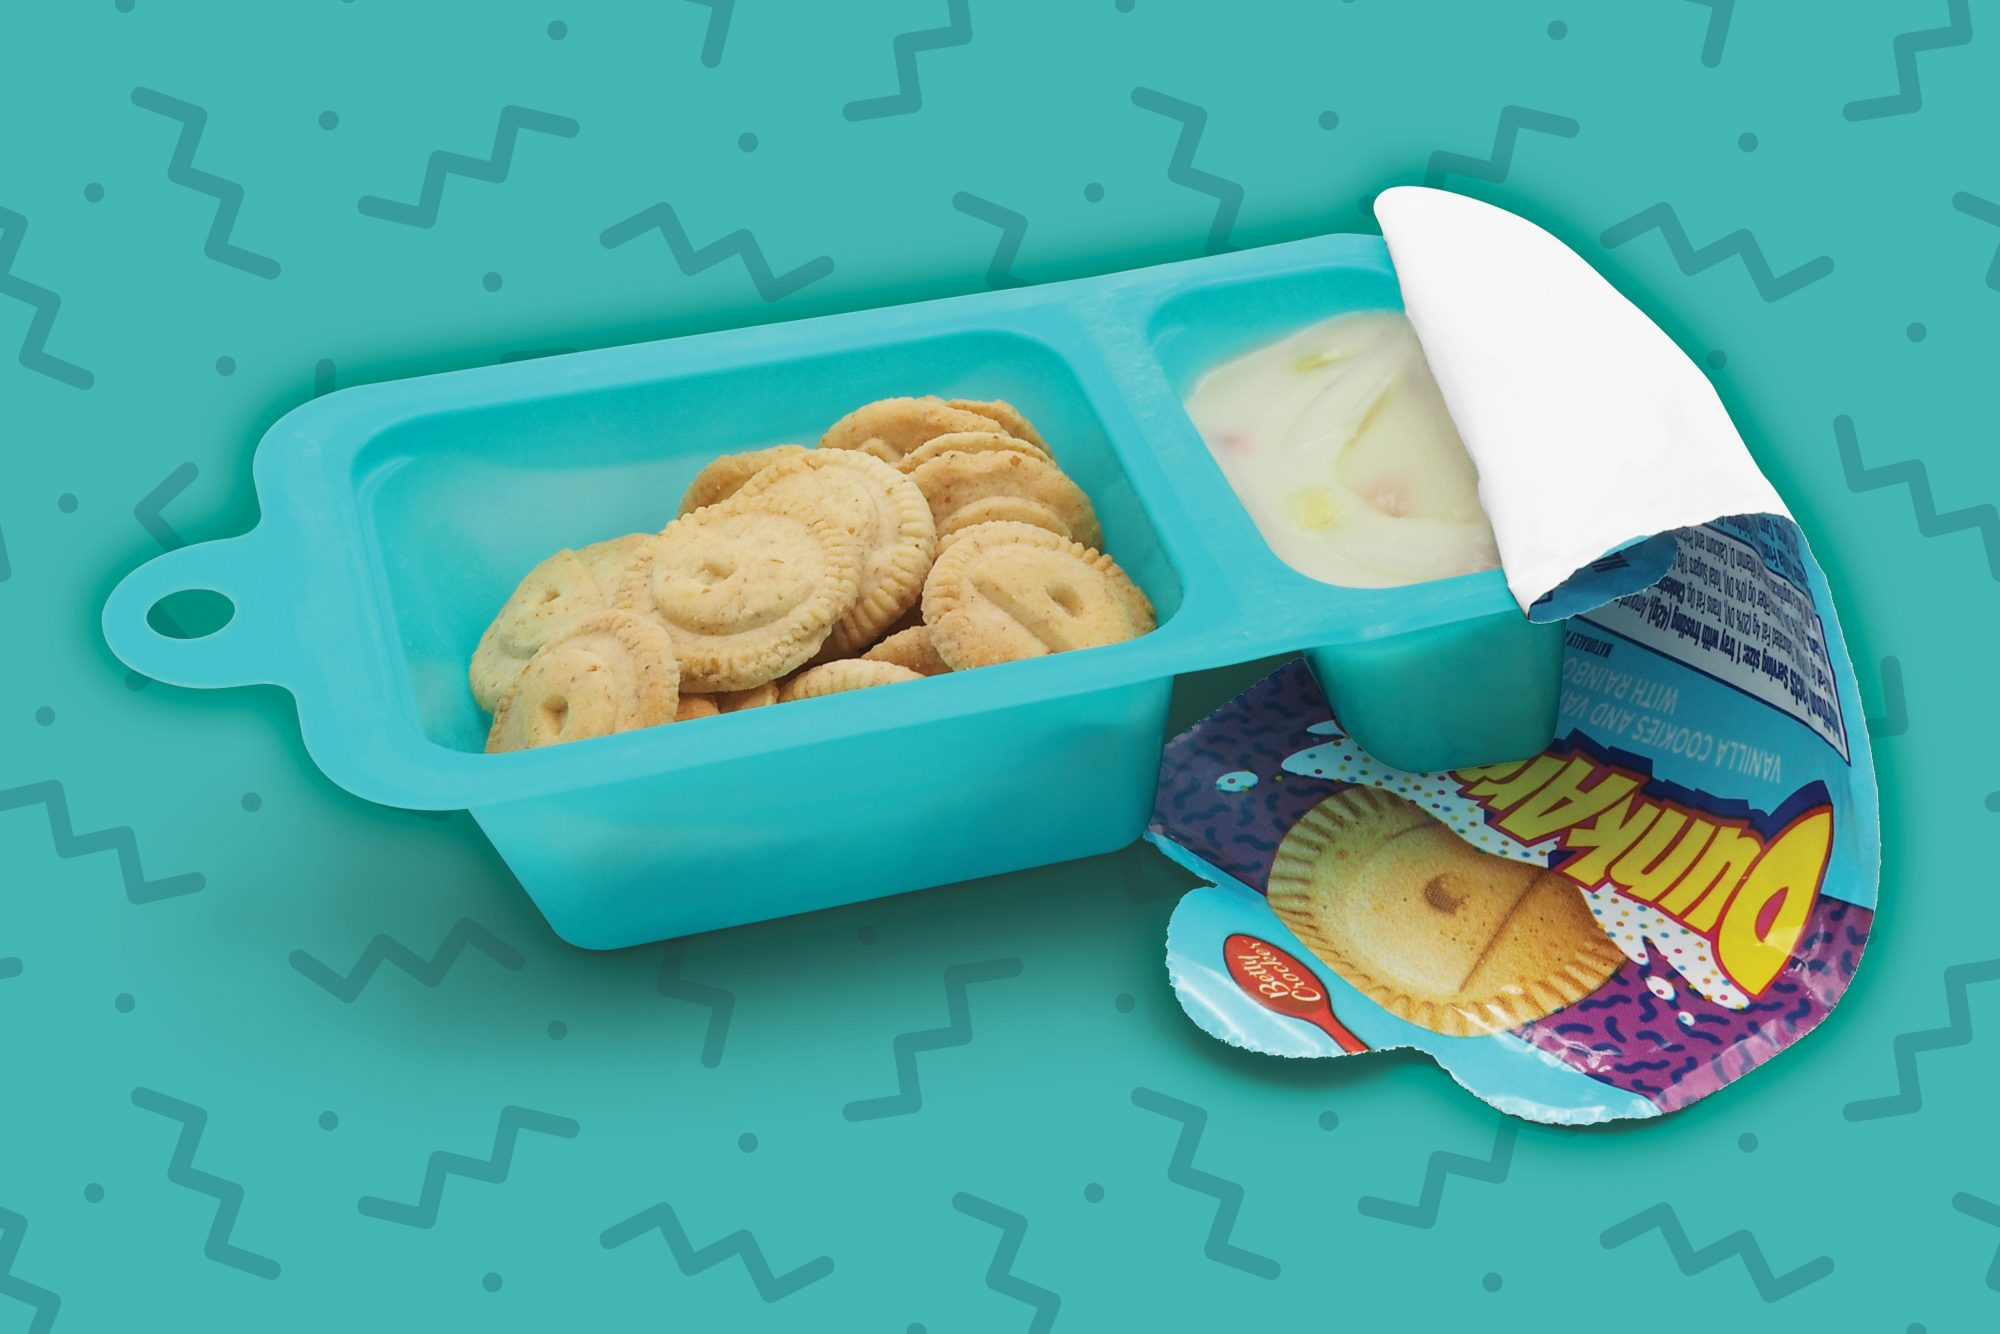 Dunkaroos Tray on a Teal Background